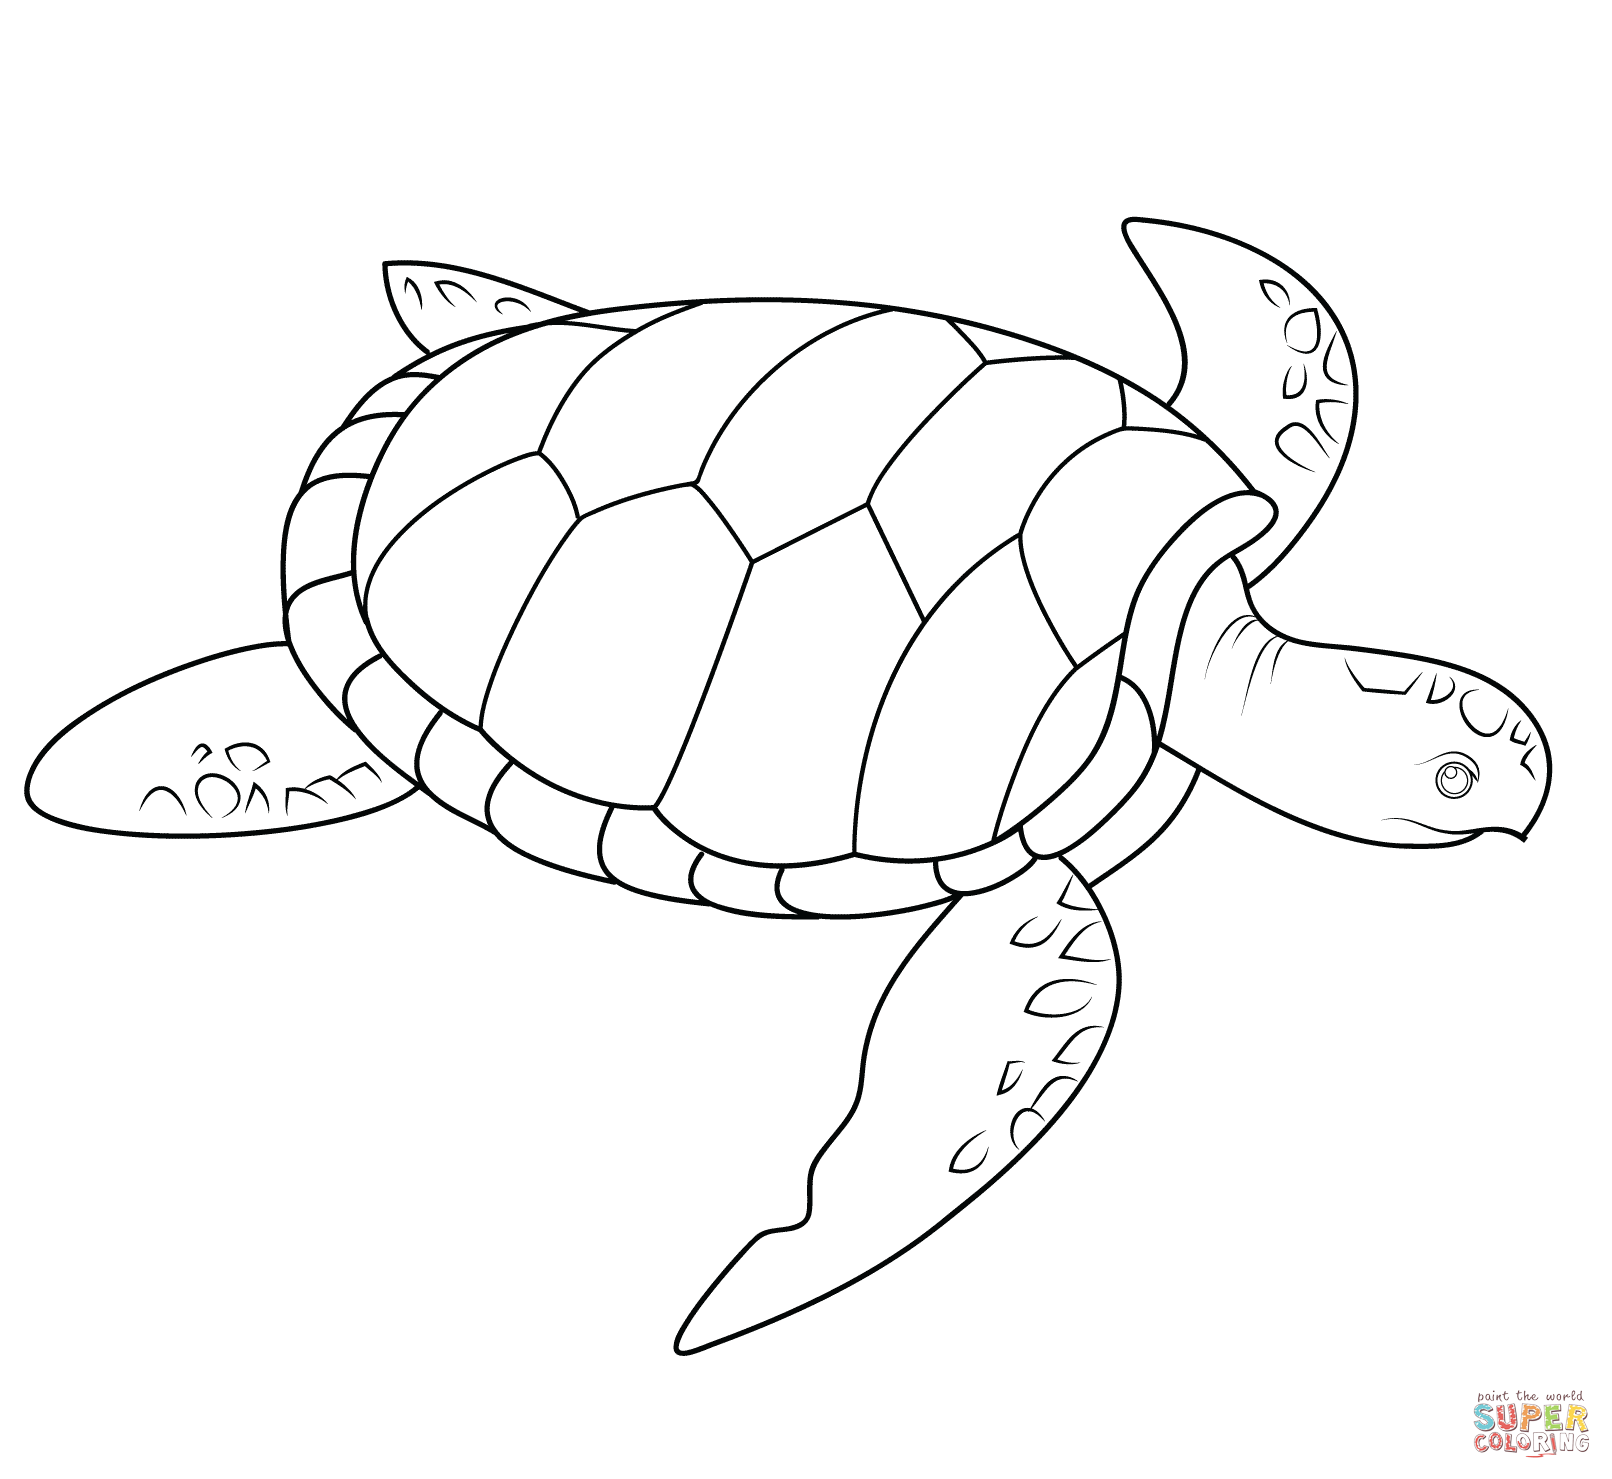 images of turtles to color free download turtle coloring pageswallpaperspictures images color of turtles to